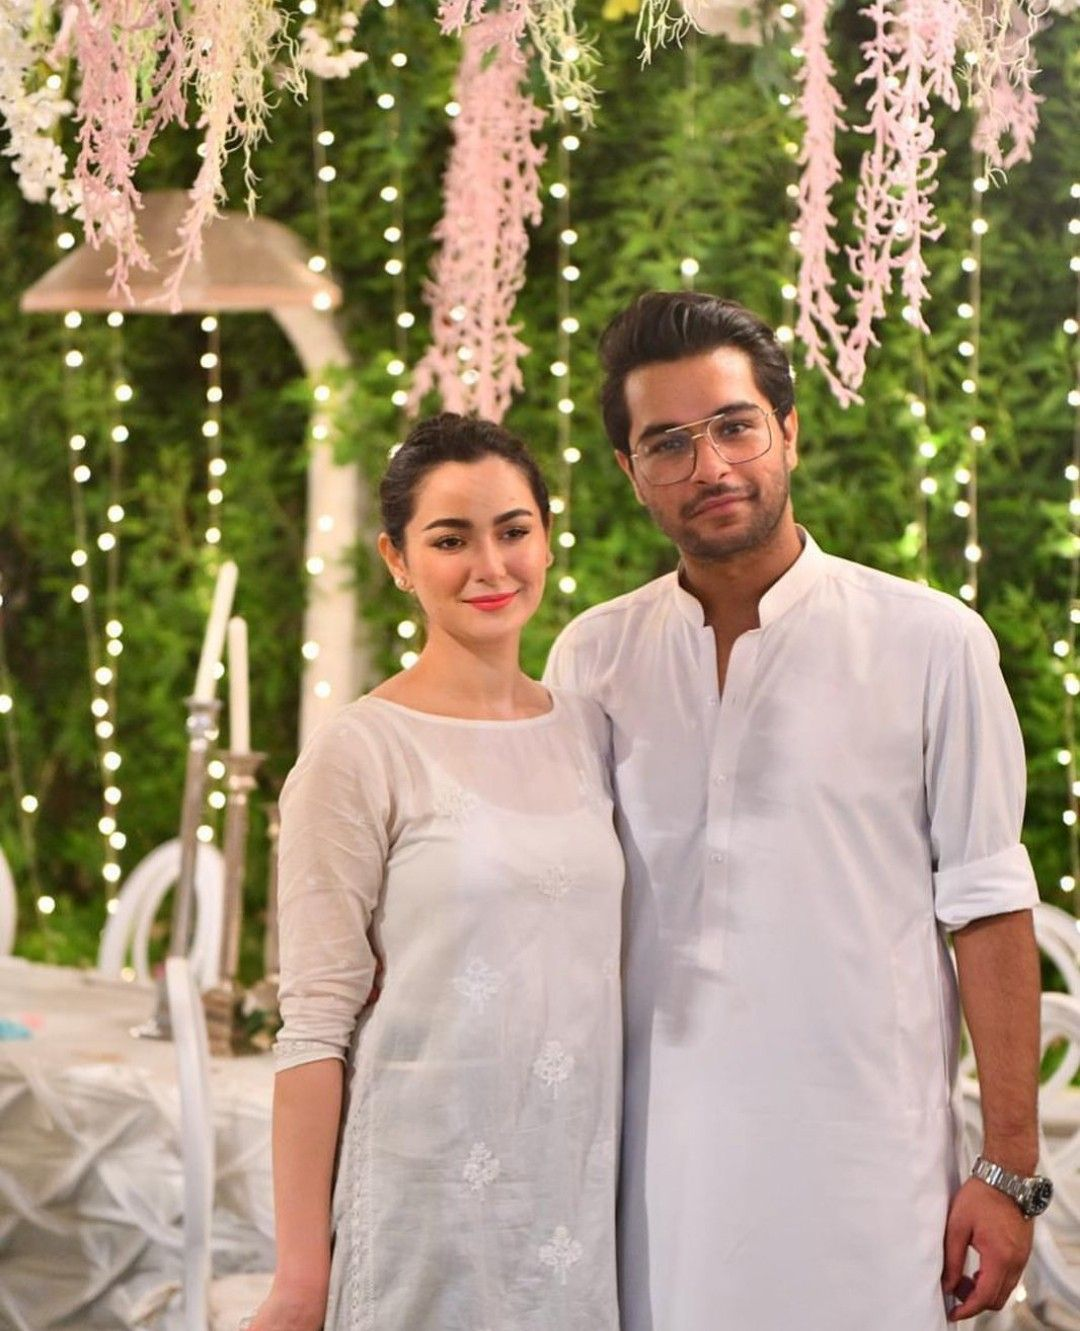 """Hania Amir is the sweetest yet most talented actress of Pakistan Showbiz Industry who has been winning hearts of the fans. She has always been affectionate towards her fans on social media however; she never liked to be trolled. So in order to foil social media trolls, Hania penned a polite note for her fans on Instagram. Hania Amir Says – Easy Ho Jao! Recently a live video session of Hania Amir and her best friend Aima Baig went viral on social media in which she spoke up such a statement which clearly indicated that Hania Amir and Asim Azhar are no more together. The duo has been observed to be together at every occasion and this cute couple was also suspected to be dating however, Hania never declared anything like that officially. In a latest video, she said that, """"We are friends! We are not dating, we are not a couple!"""" She went on to explain about her bonding with Asim Azhar and named it as friendship. This video spread like a fire on internet as people always used to love to see Hania and Asim together but this statement just settled a storm and diverted the flow to another gossip session. So Hania Amir tried to convey a sweet yet stern message to the fans that, """"ASIM IS A BEAUTIFUL PART OF MY LIFE AND WE HAVE SEEN SOME INSANE TIMES TOGETHER AND WE SHARE A BOND BEYOND ANYONES COMPREHENSION. WE CHOOSE TO LOOK AT AND ACKNOWLEDGE LOVE NOT HATE. THAT BEING SAID…WE KNOW PAKISTANIO KA HUMOUR ACHA HAI LEKIN EASY HOJAO. SOCIAL MEDIA KAI TROLL SIPAHIYON! BILKUL FREE NA HO. AUR ZAYADA OVER BHI NAI! Shukriya!"""" Hania Amir Celebrates 3 Million Followers on Instagram Well… this statement was the part of a heartwarming message for the fans in which she shared about her laughter sessions and tears shared with the fans which made her reach this milestone of 3 million followers. She said, """"Every day I'm learning new things. About myself. About life. Every day I see myself learning, healing & evolving. I'm learning to be more thankful for the life I have. Thankful for the peopl"""